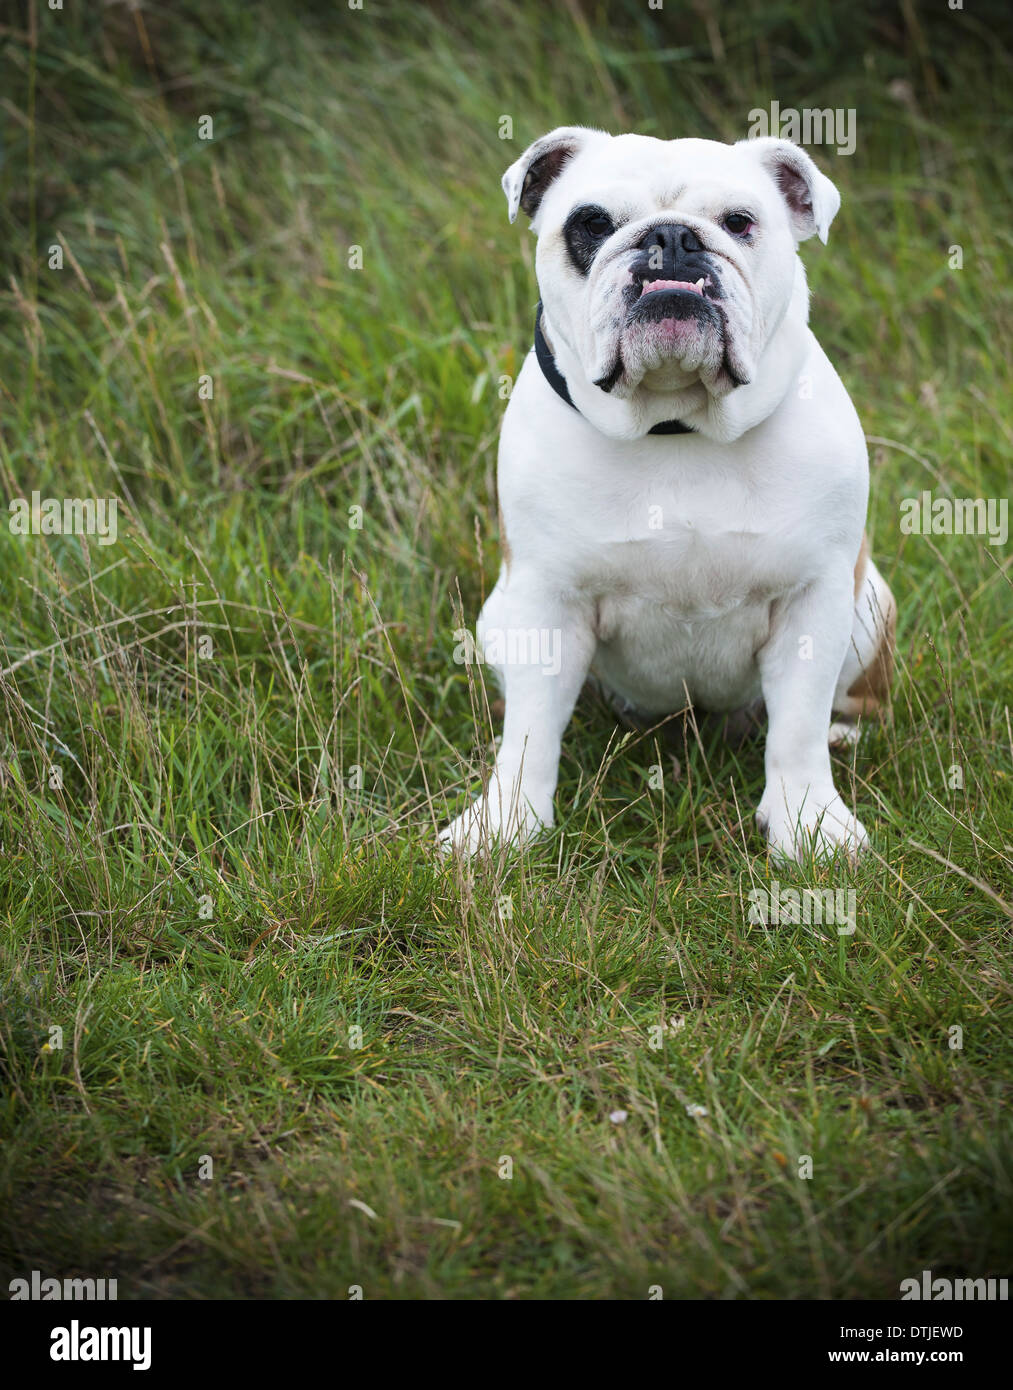 A white English Bulldog a pedigree dog with a snubbed nose sitting on his haunches on a lawn England - Stock Image